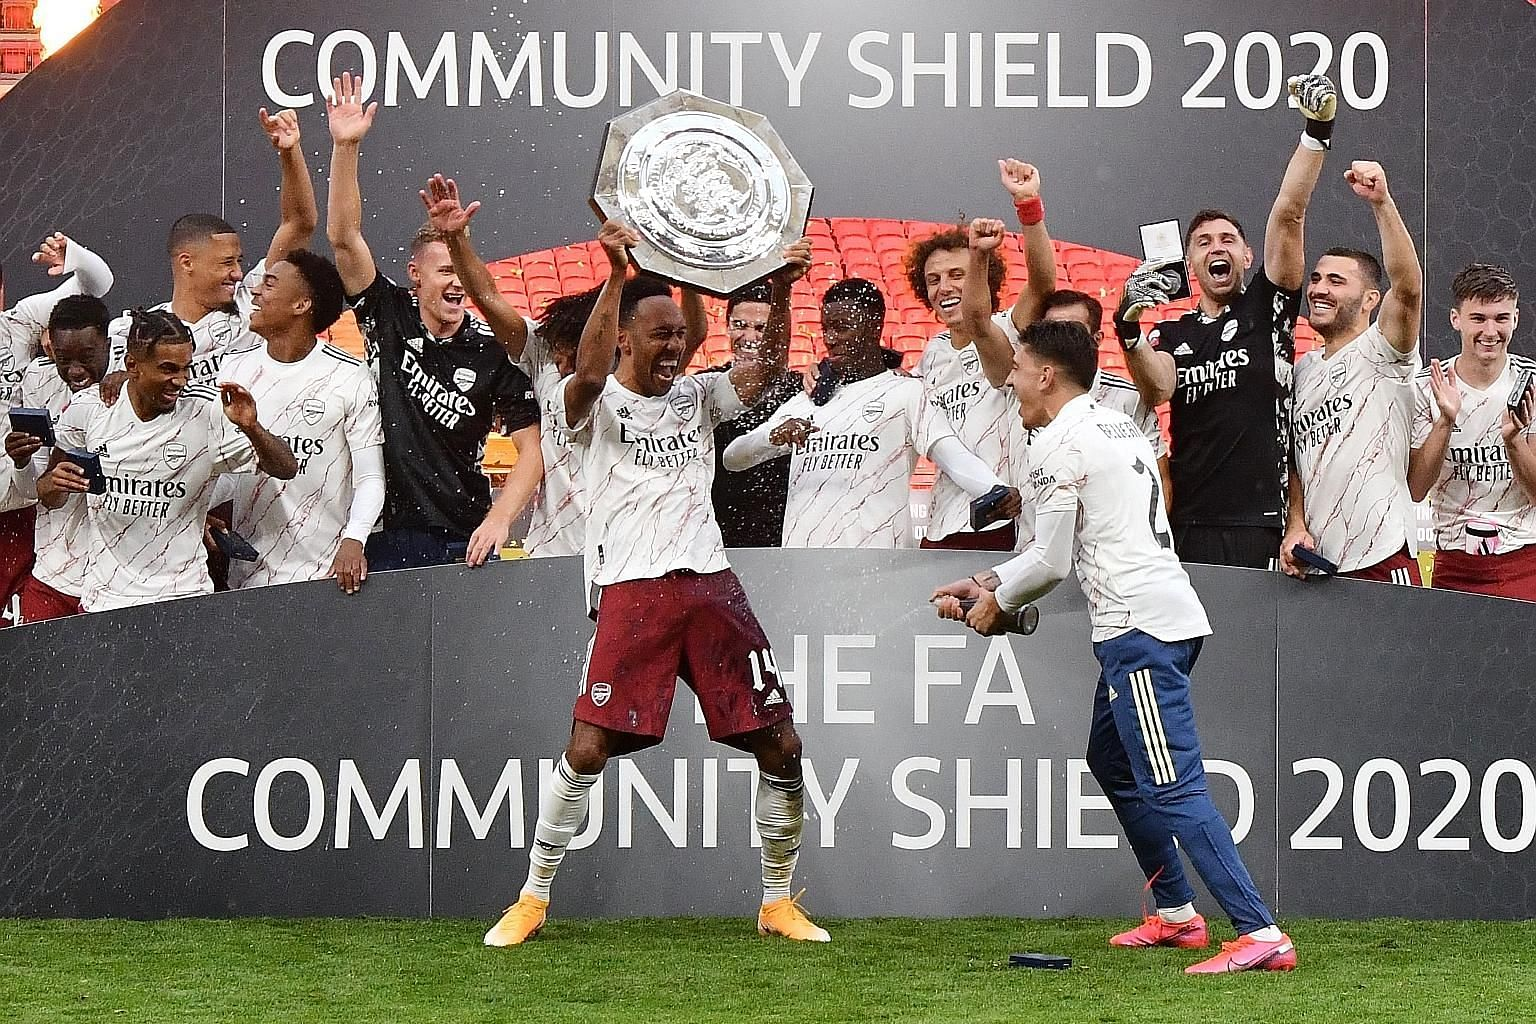 Arsenal captain Pierre-Emerick Aubameyang lifting the Community Shield, after defeating Liverpool on penalties. The Gabon forward has kept Arsenal waiting nervously during protracted talks over his new contract. PHOTO: REUTERS